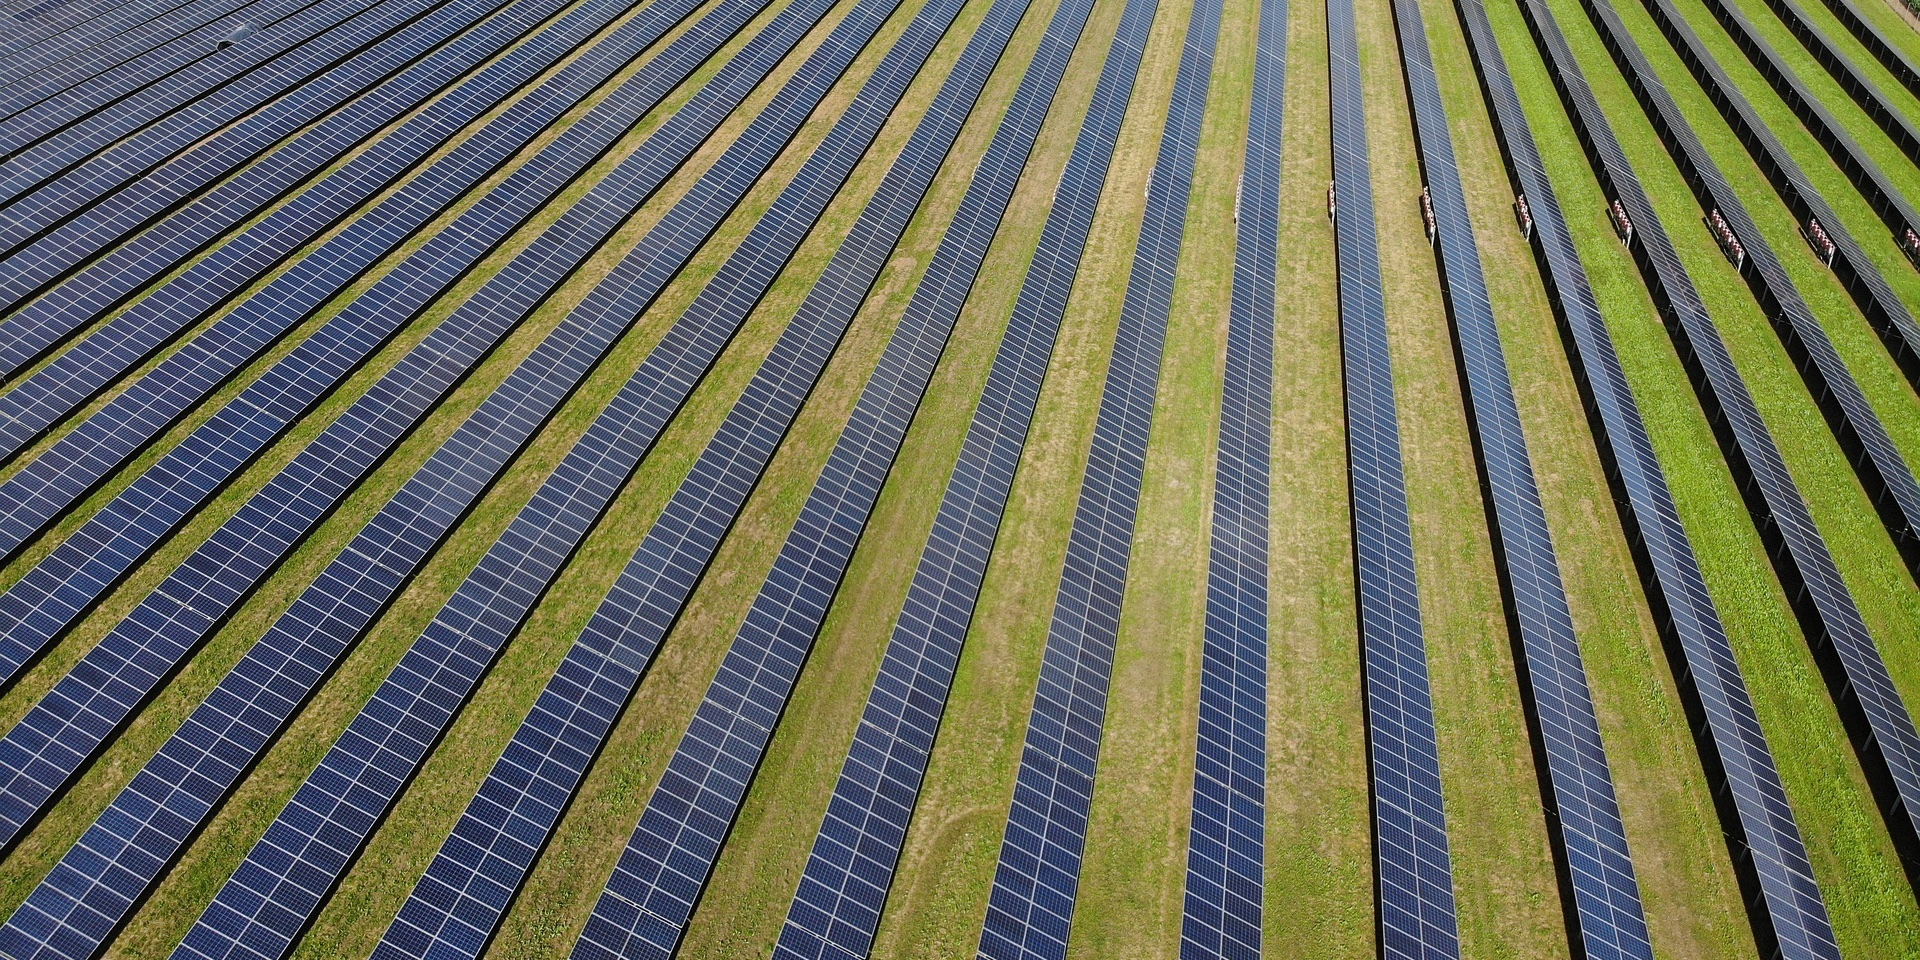 EGEB: New solar farms in Florida, a huge solar project in Morocco, offshore wind battles mollusks